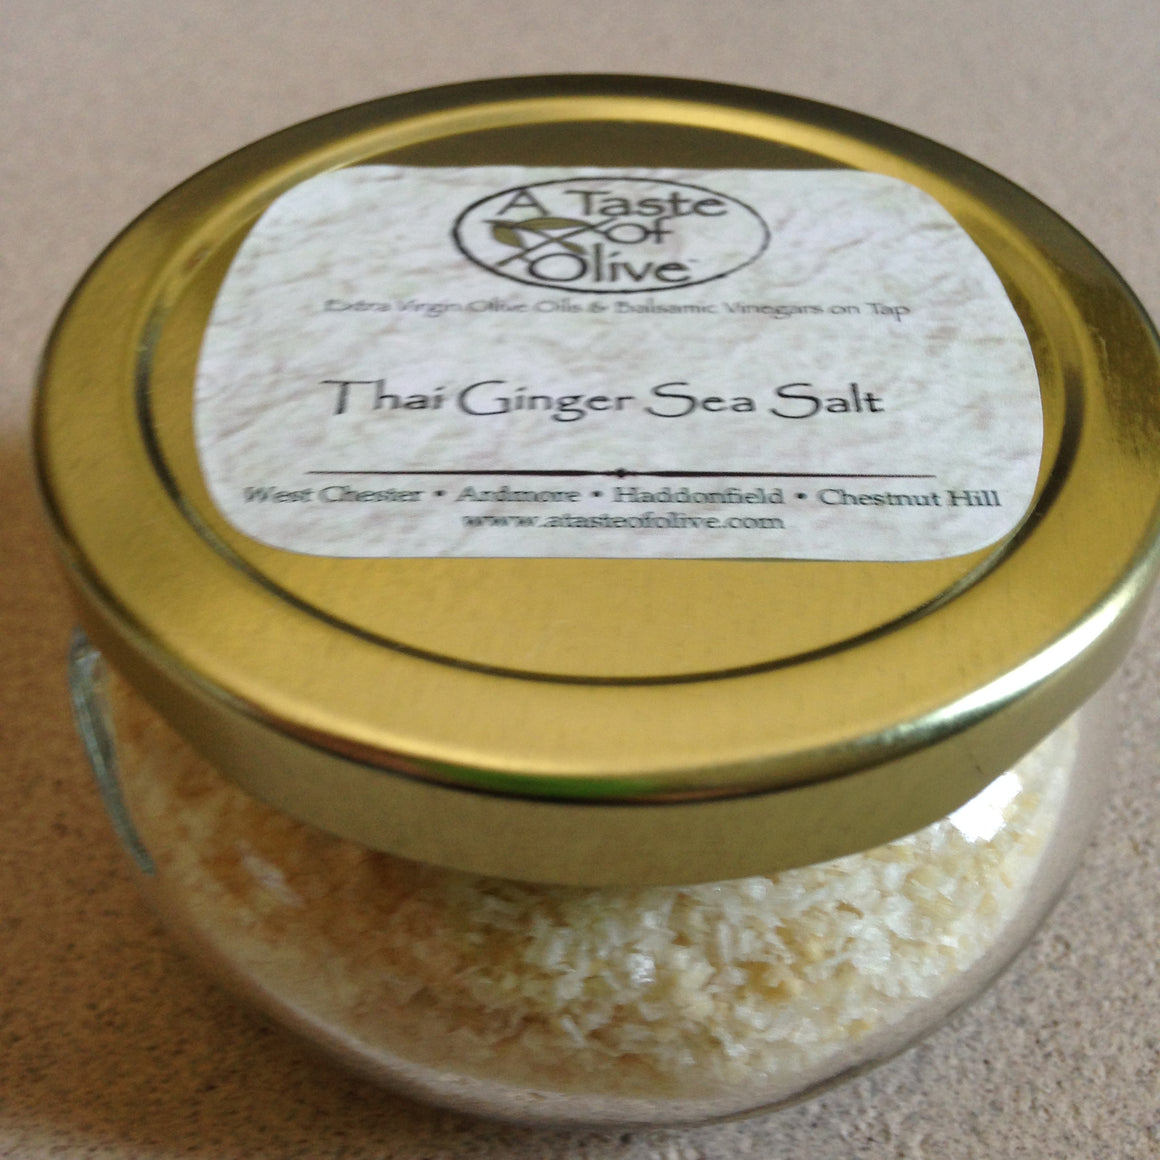 Thai Ginger Sea Salt - A Taste of Olive